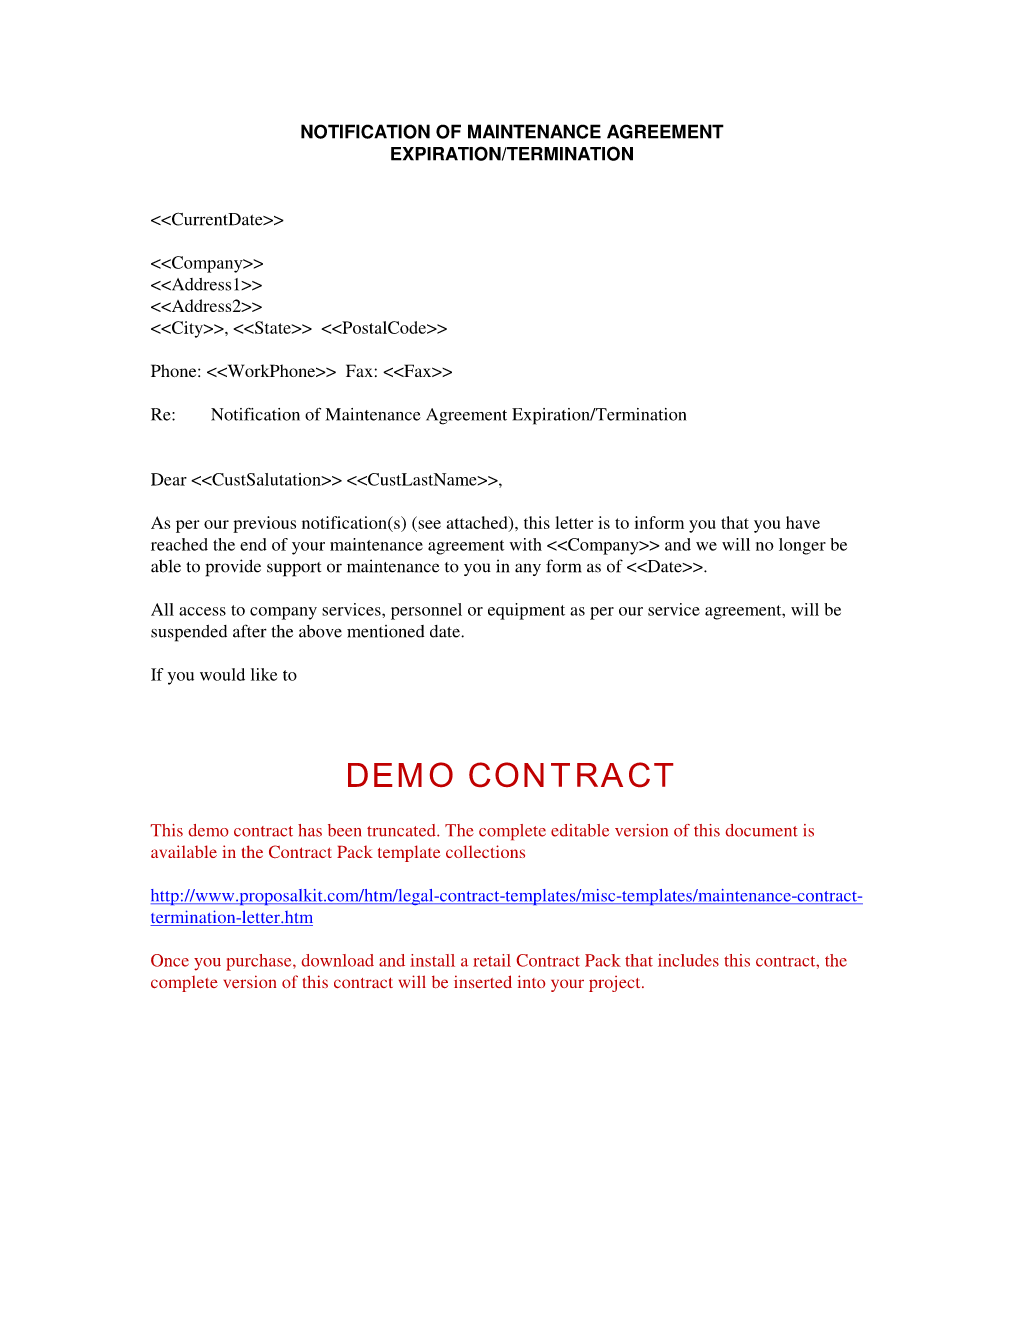 Request Letter For Job Contract Extension Cover Templates Sample